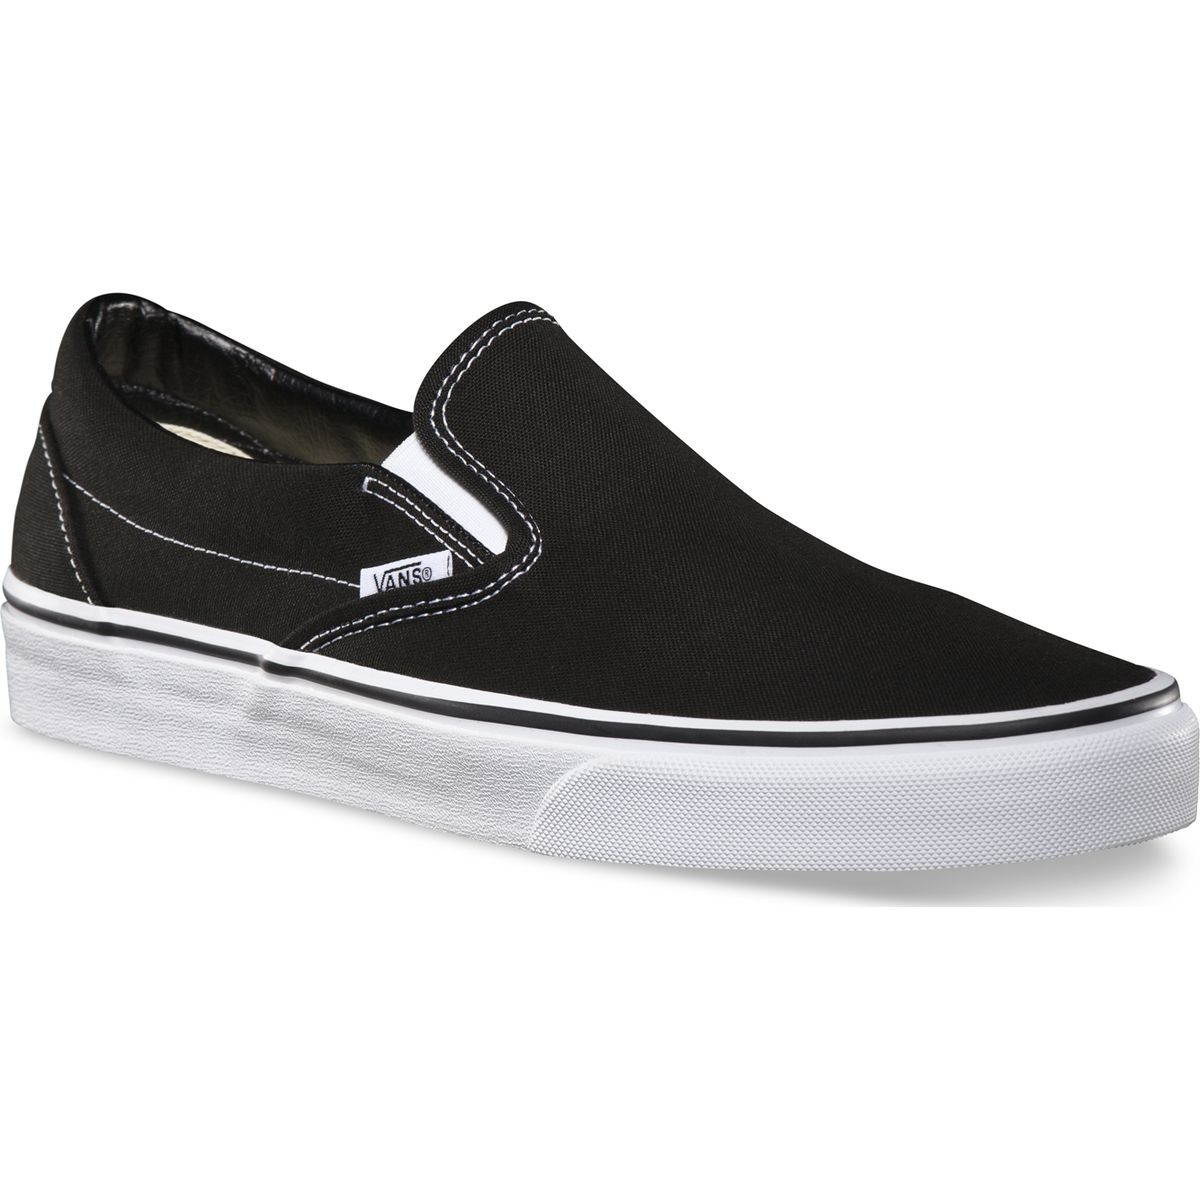 Vans Classic Slip On Shoes - Black 13.0